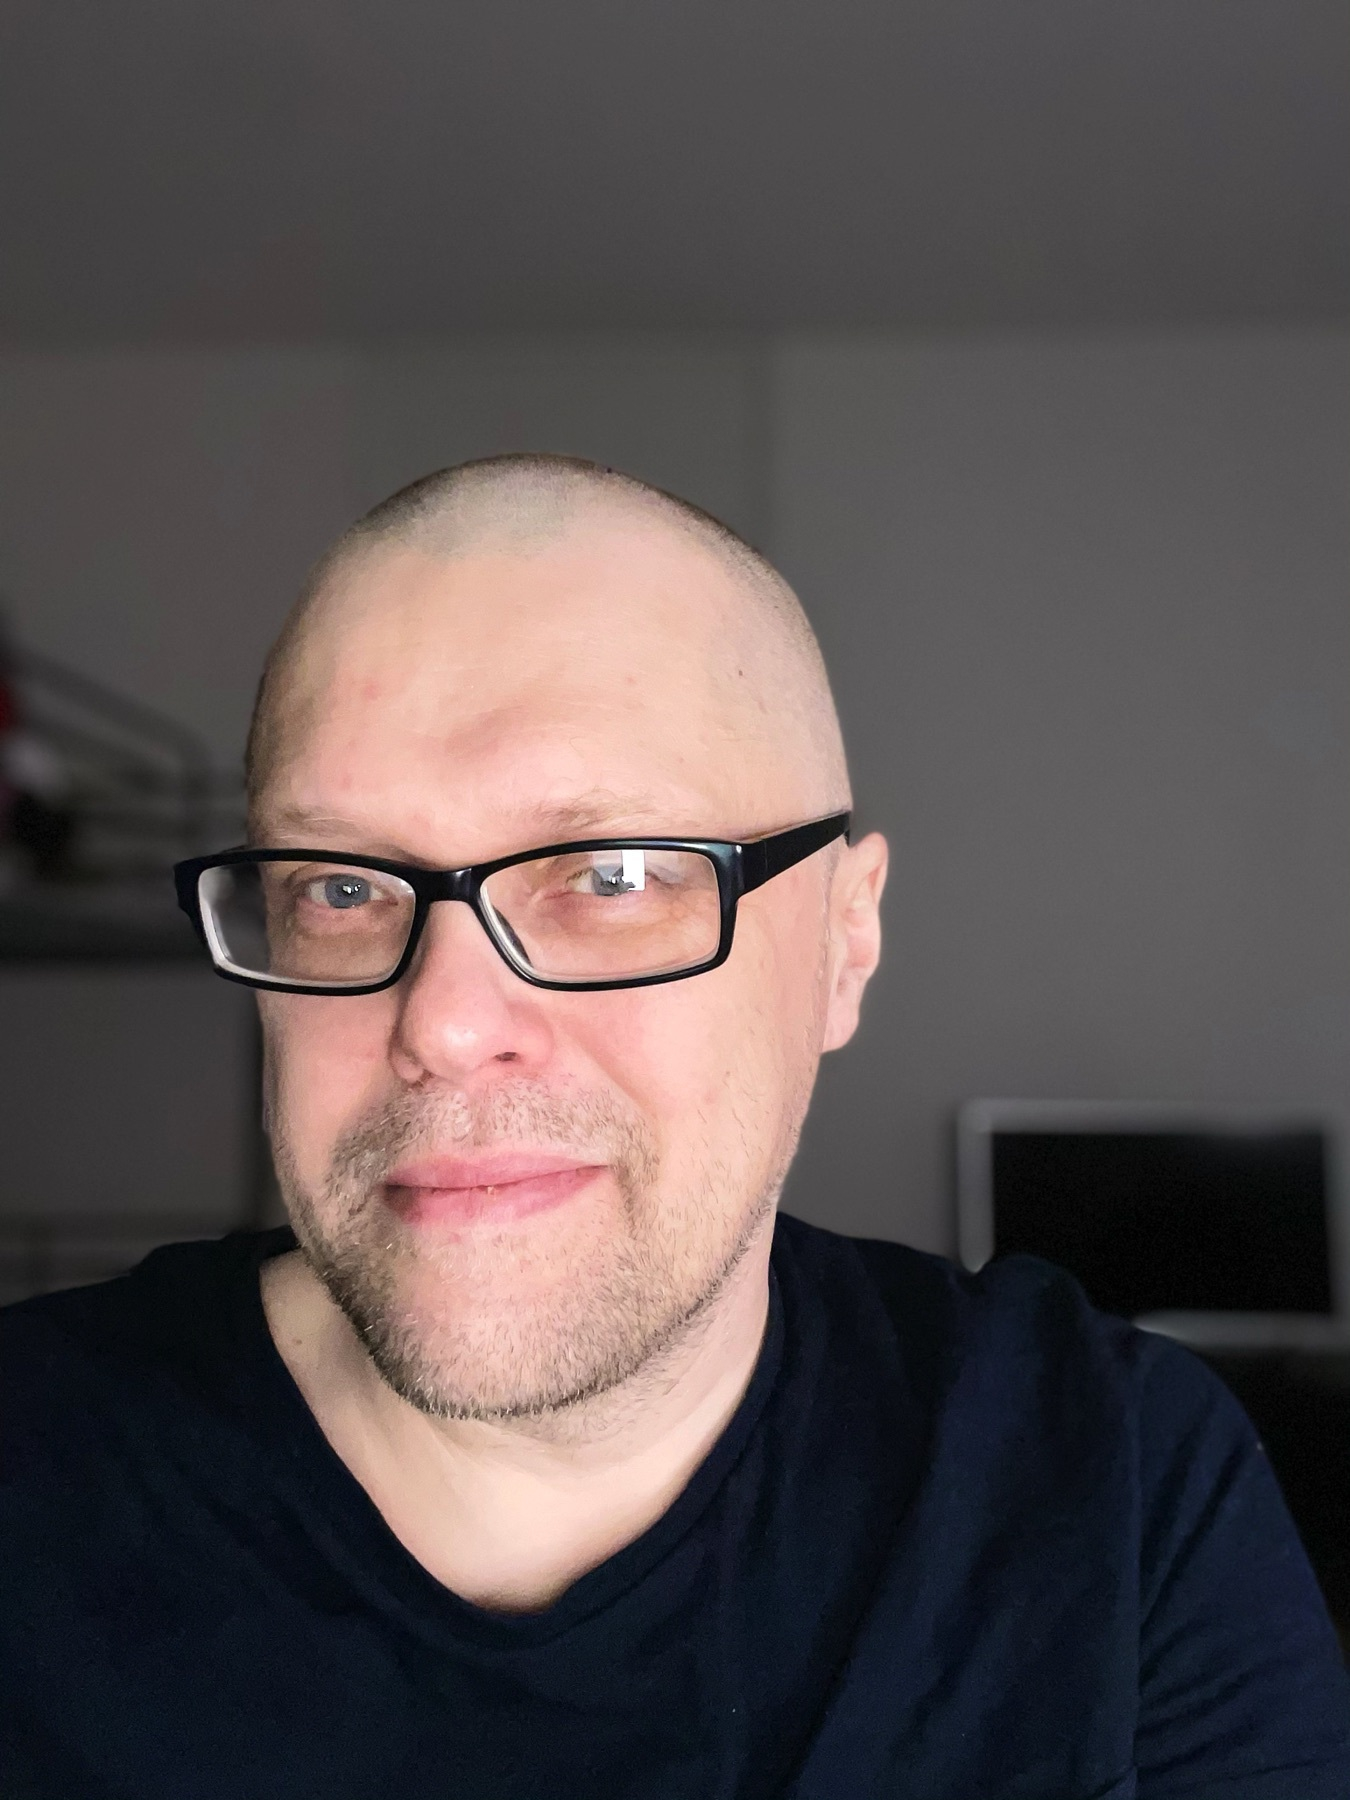 haircut that is neither great nor terrible (no hair at all)